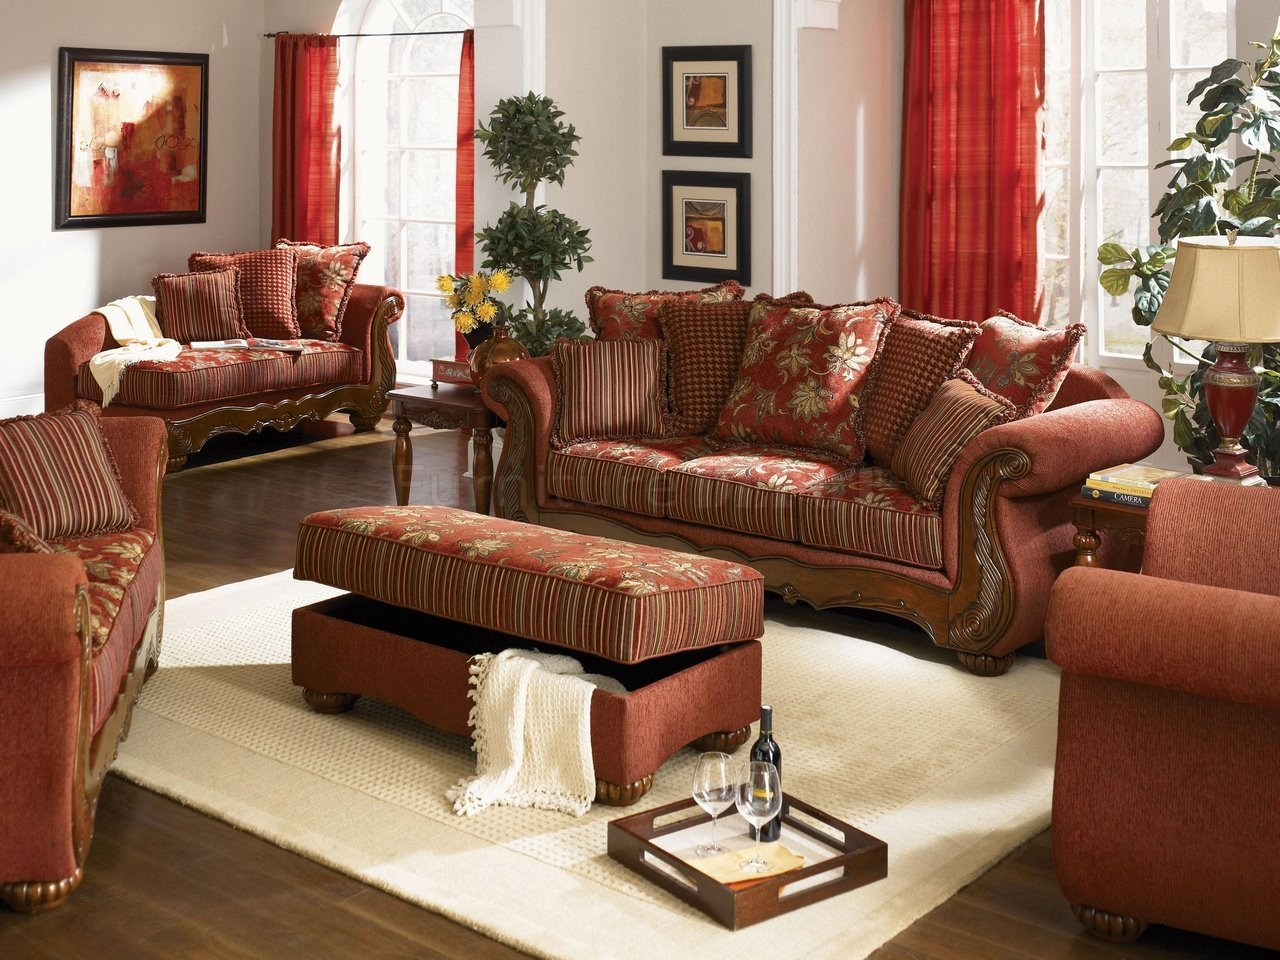 Traditional Living Room Furniture Make Your Home Feel Like Home top 25 Traditional Living